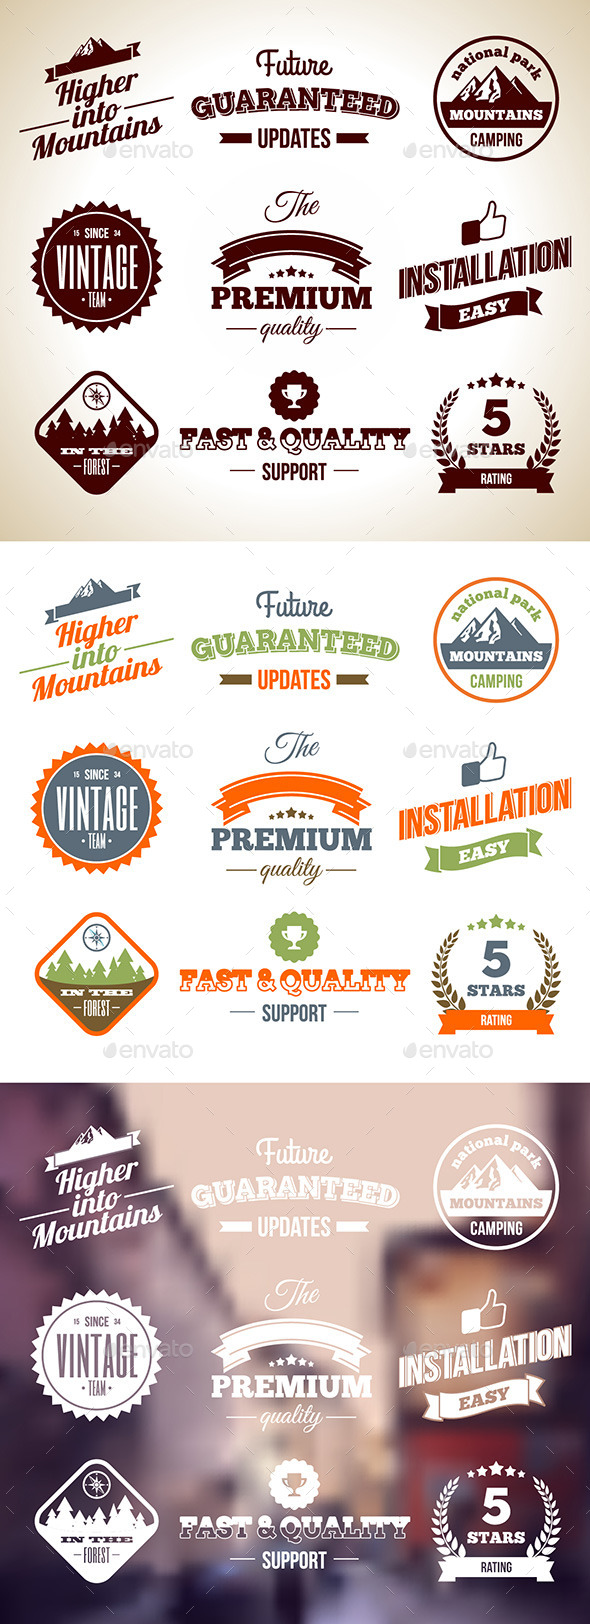 Vintage Badges. Premium labels. Hight Quality Design Elements - Decorative Symbols Decorative